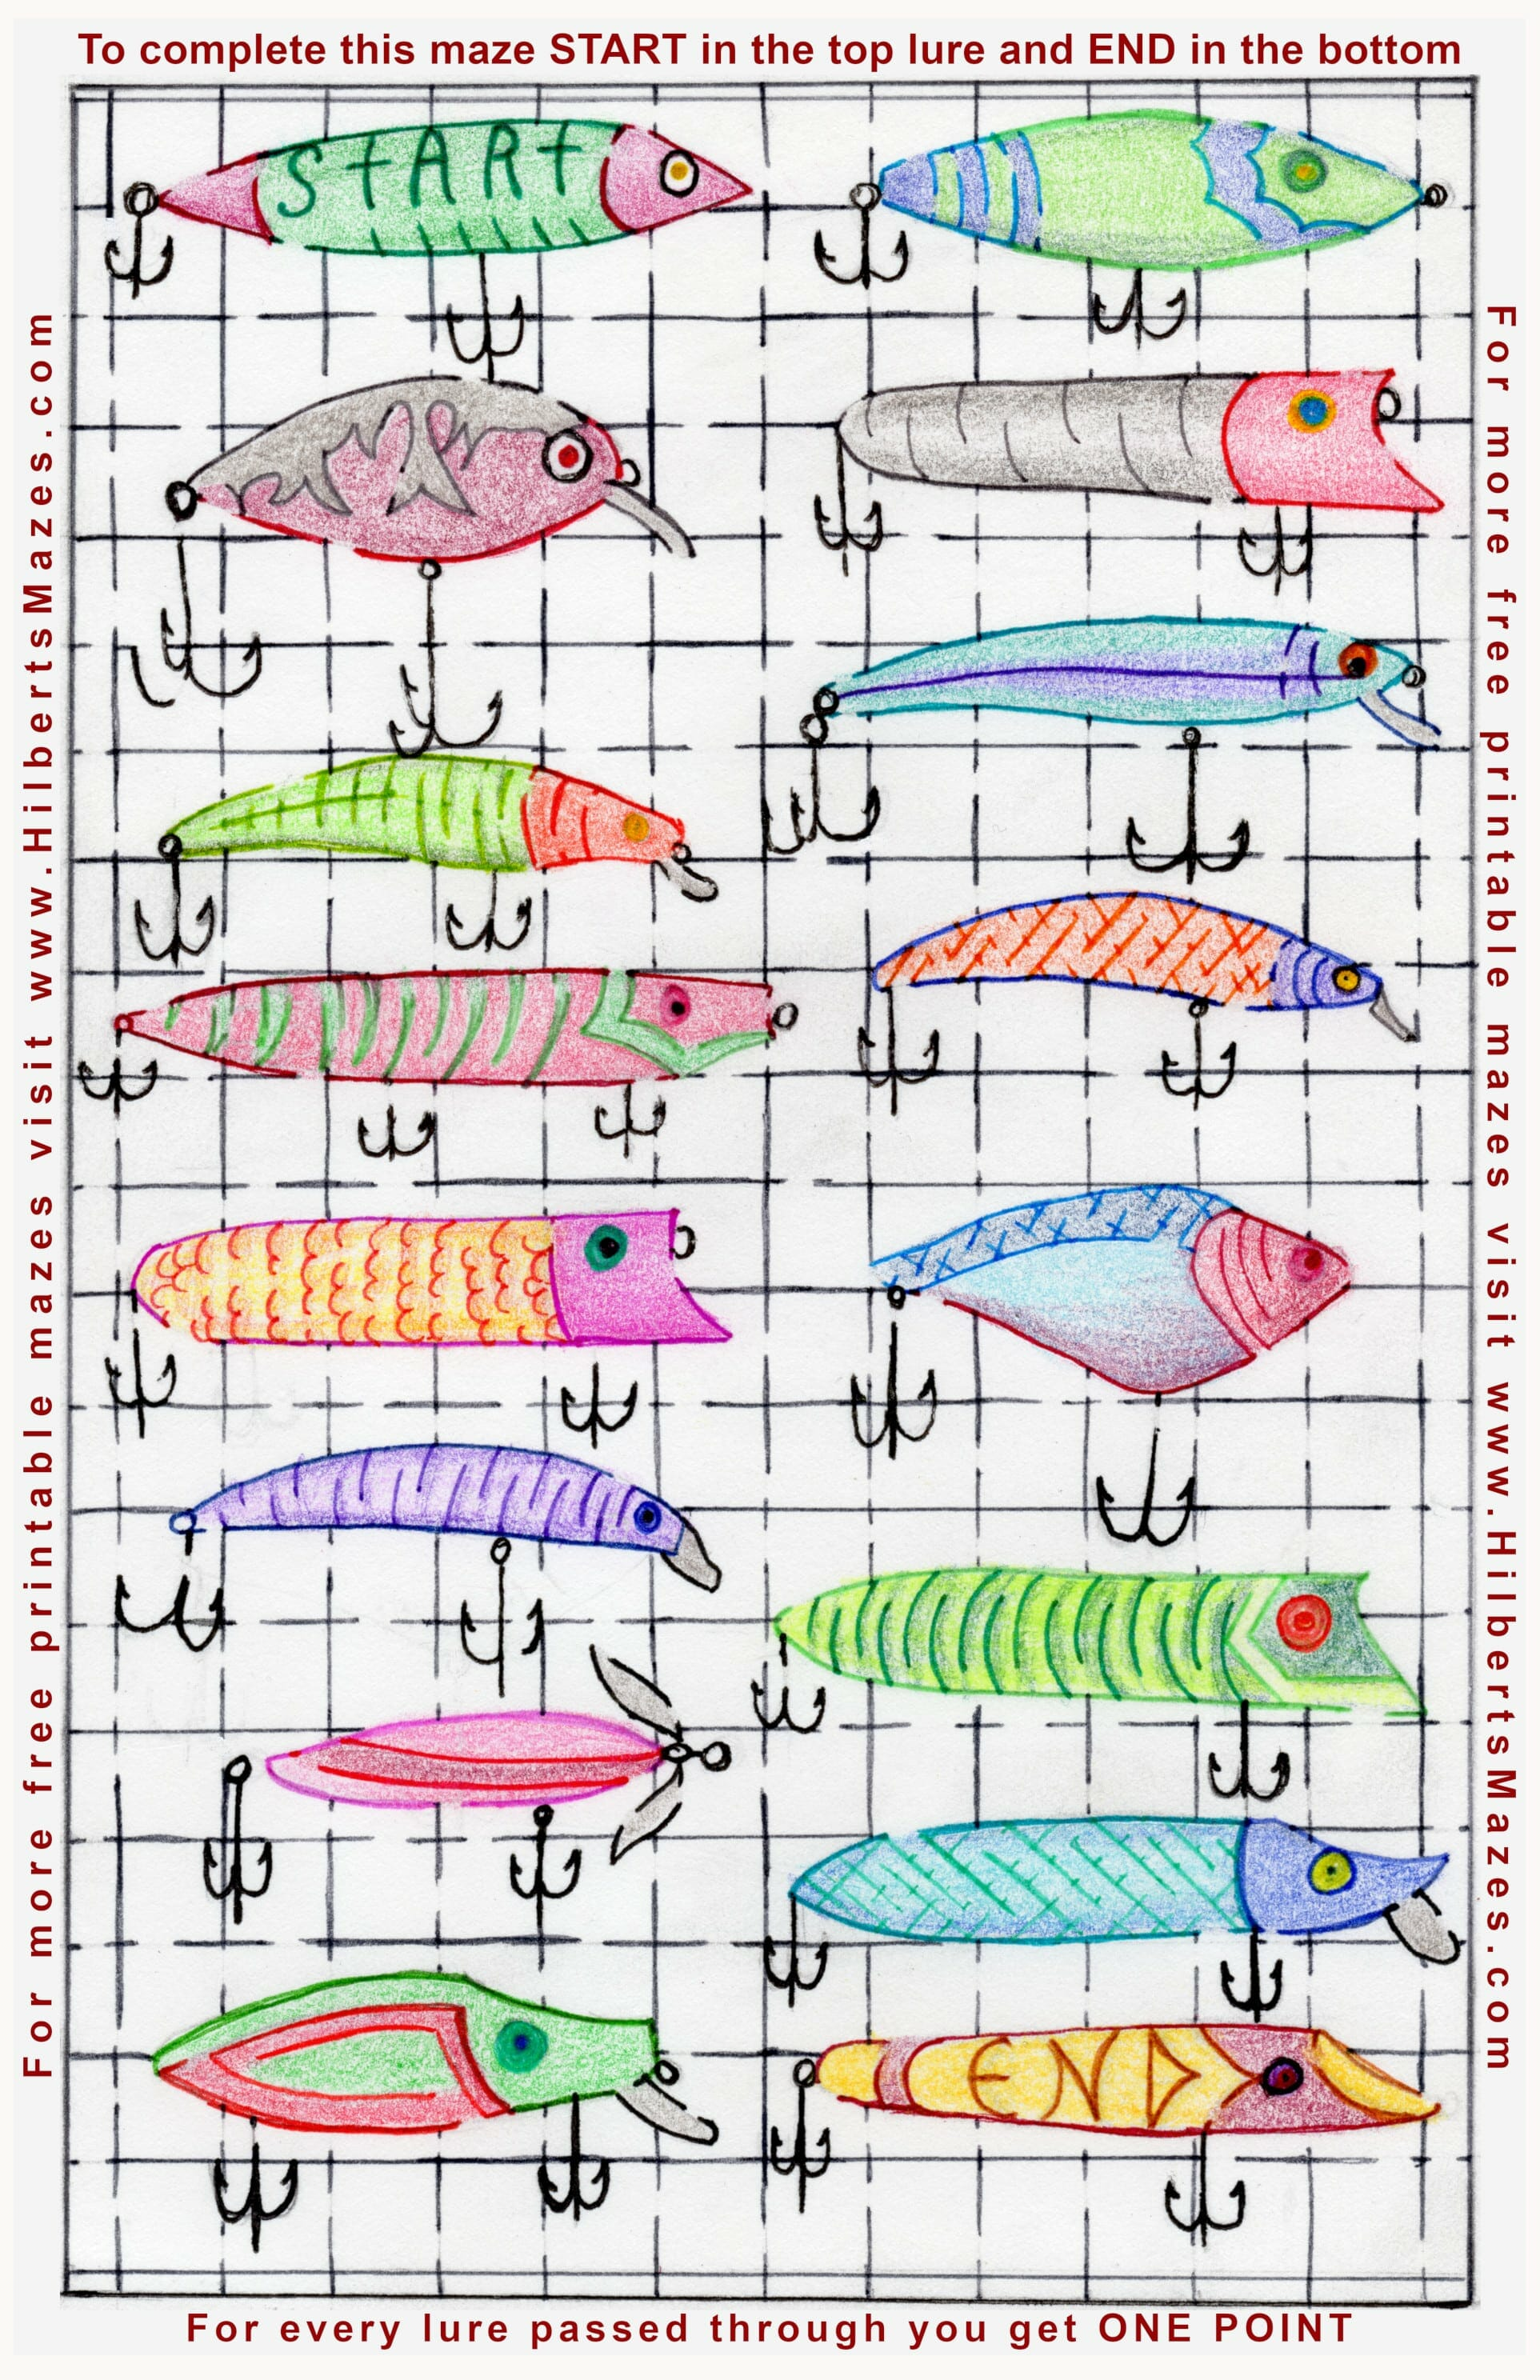 Free Printable Hand Drawn Vintage Fishing Lure Maze. Easily downloadable and printable PDF format. Great Mazes for both kids & adults very challenging but fun.